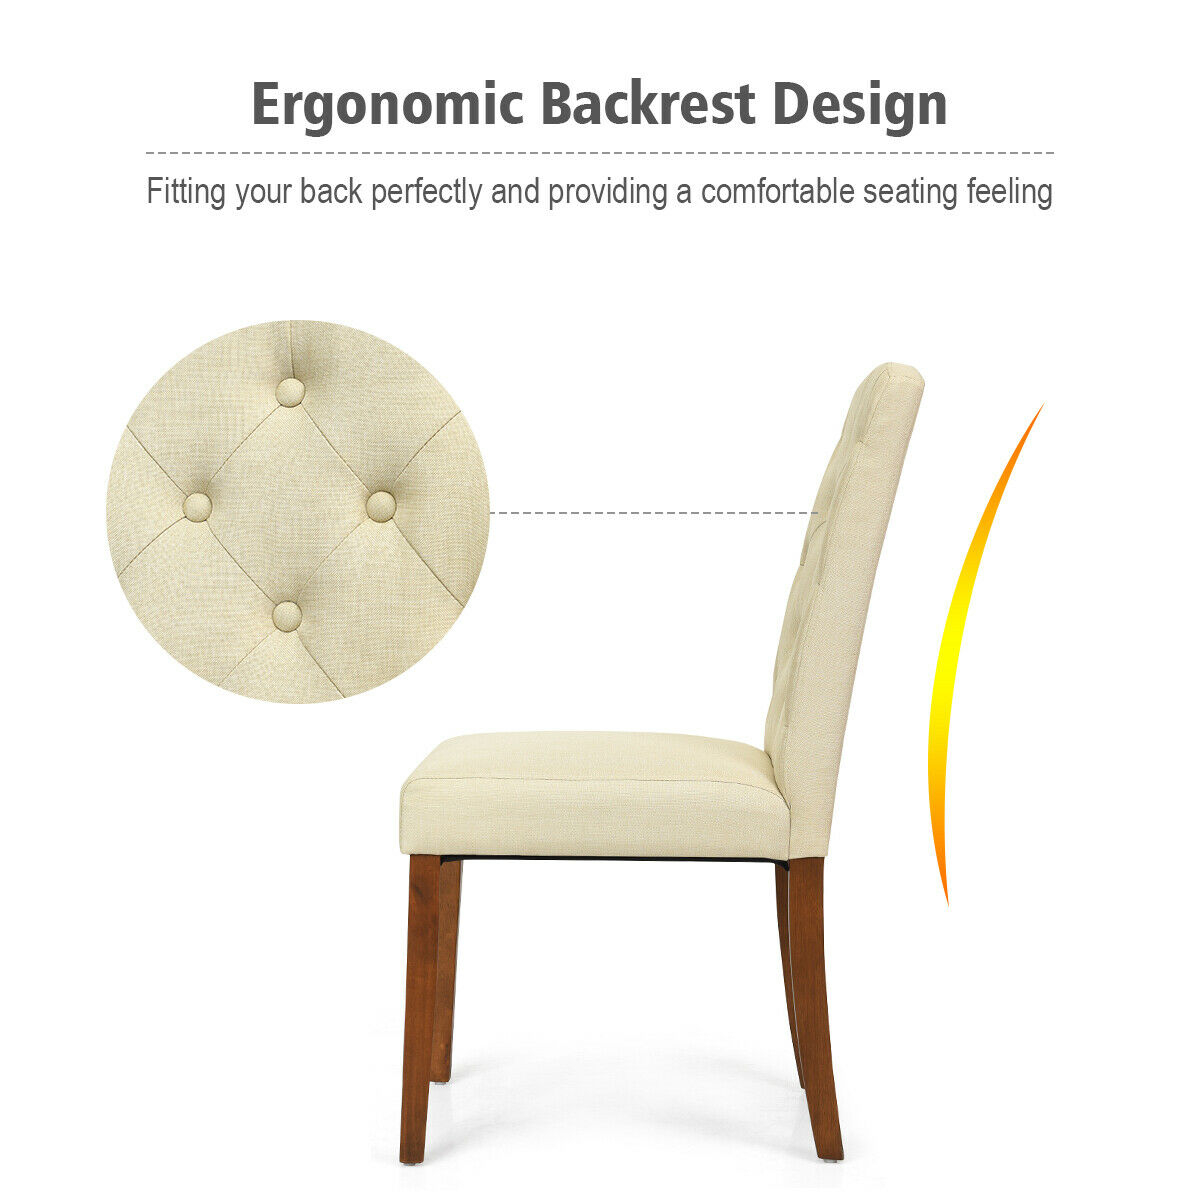 Set of 2 Fabric Wood Accent Dining Chair Tufted Modern Living Room Furniture-beige